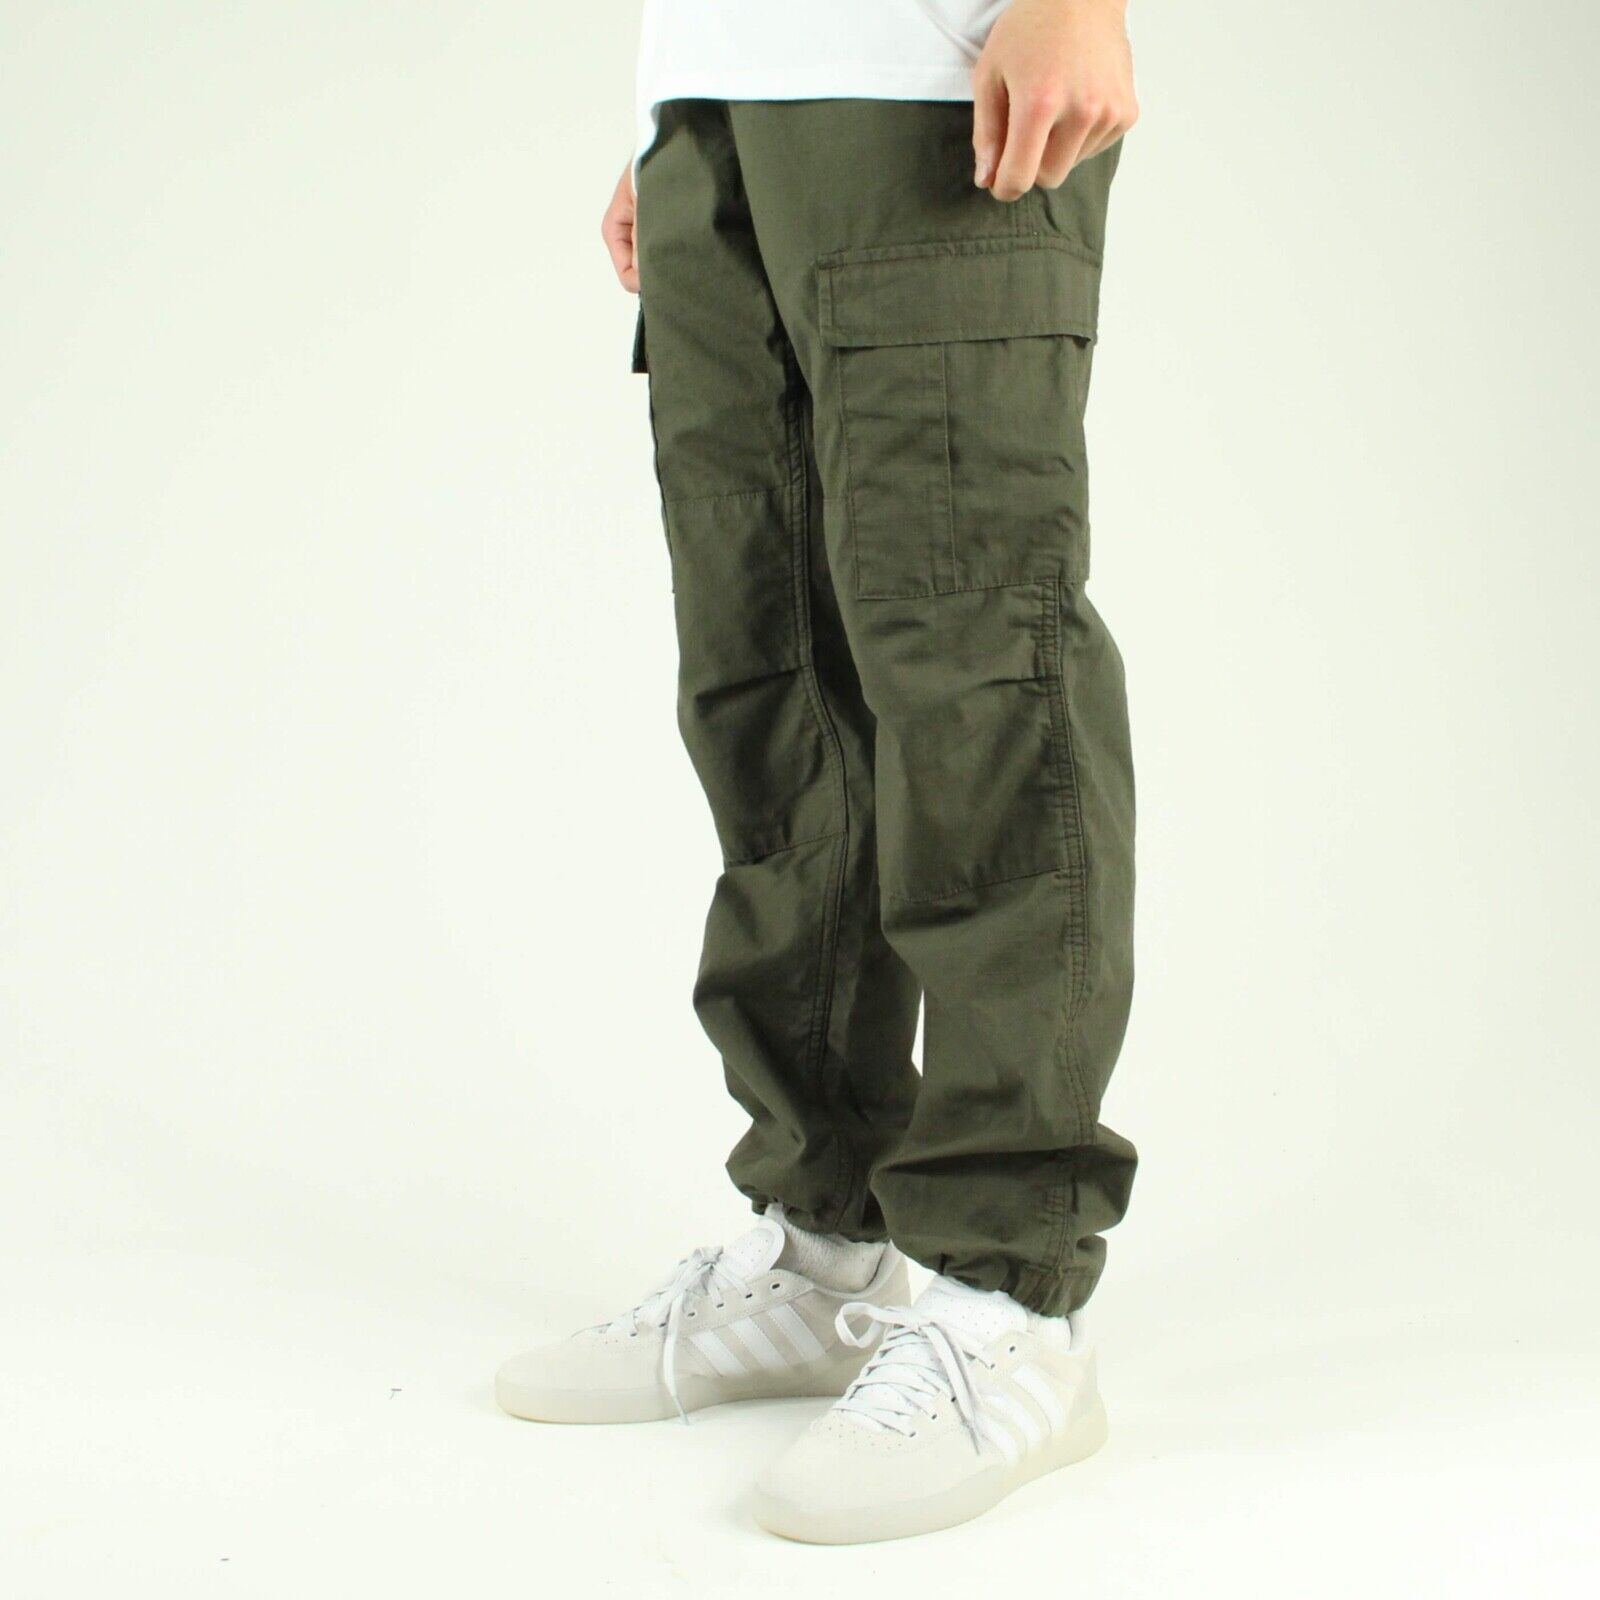 offer discounts crazy price outlet for sale Details about Carhartt Aviation Cargo Ripstop Pants Trousers in Cypress  Green in size 30,32,34